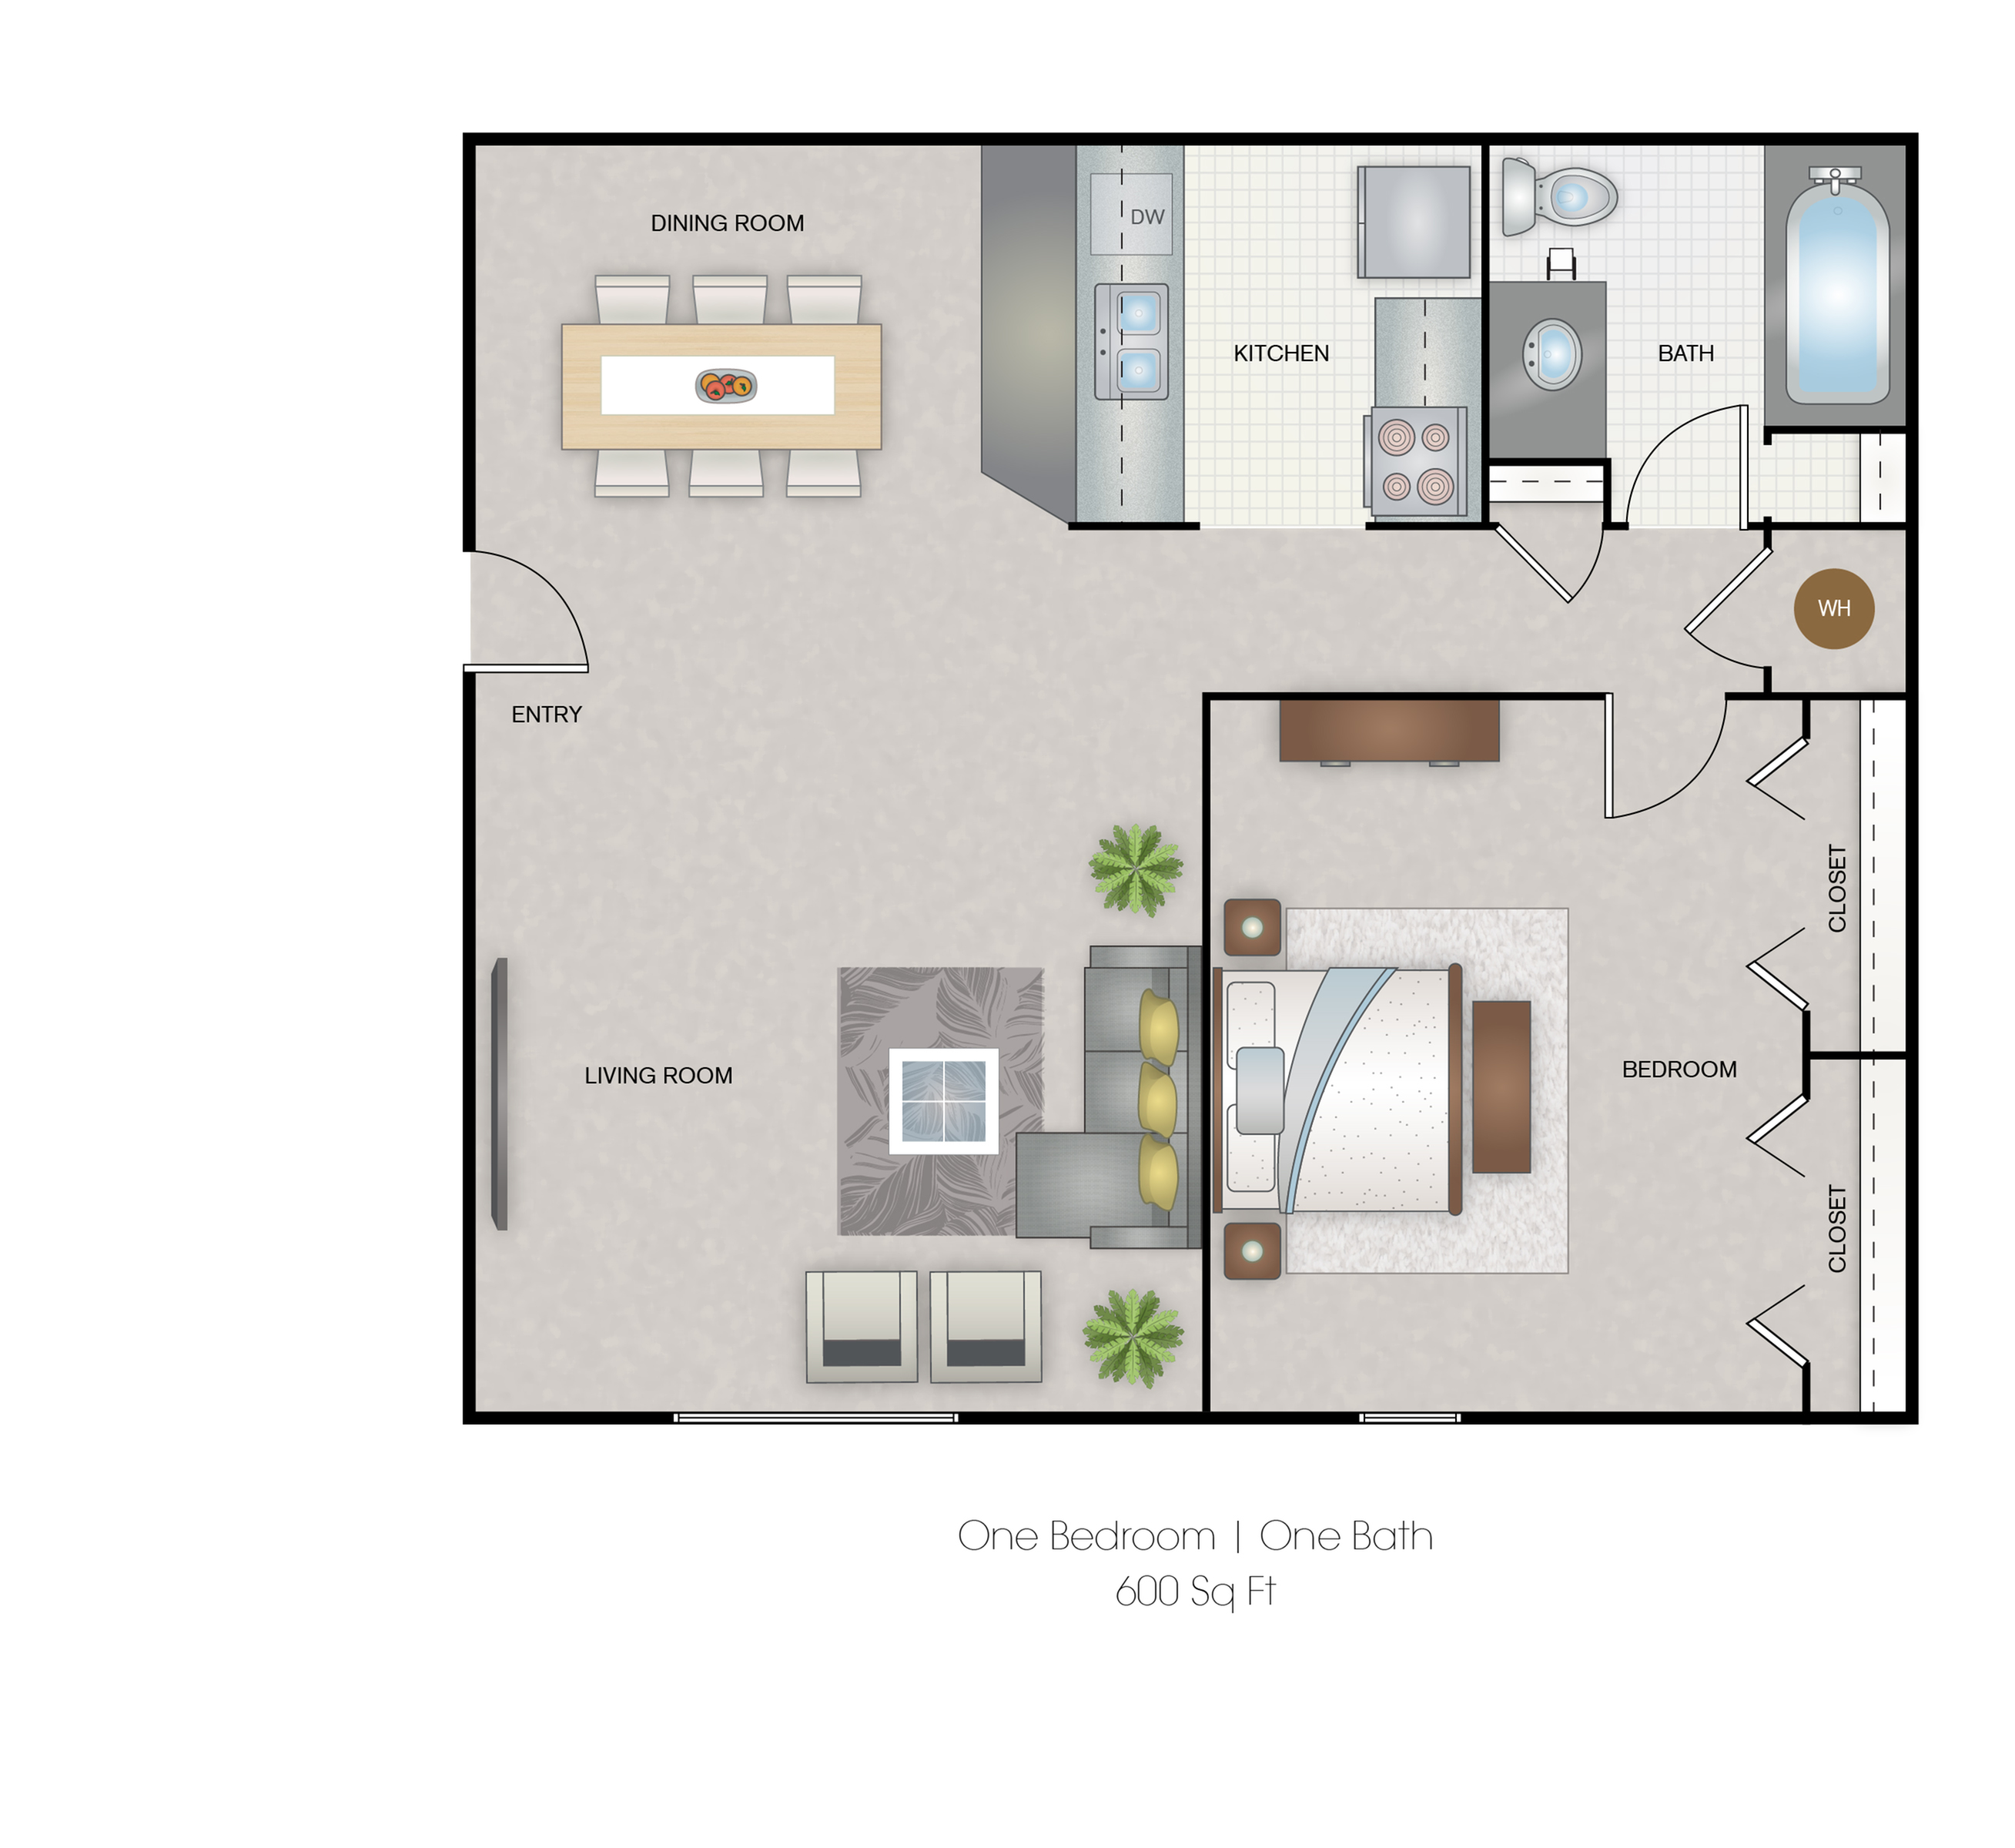 Large one bedroom 600 Sq-ft